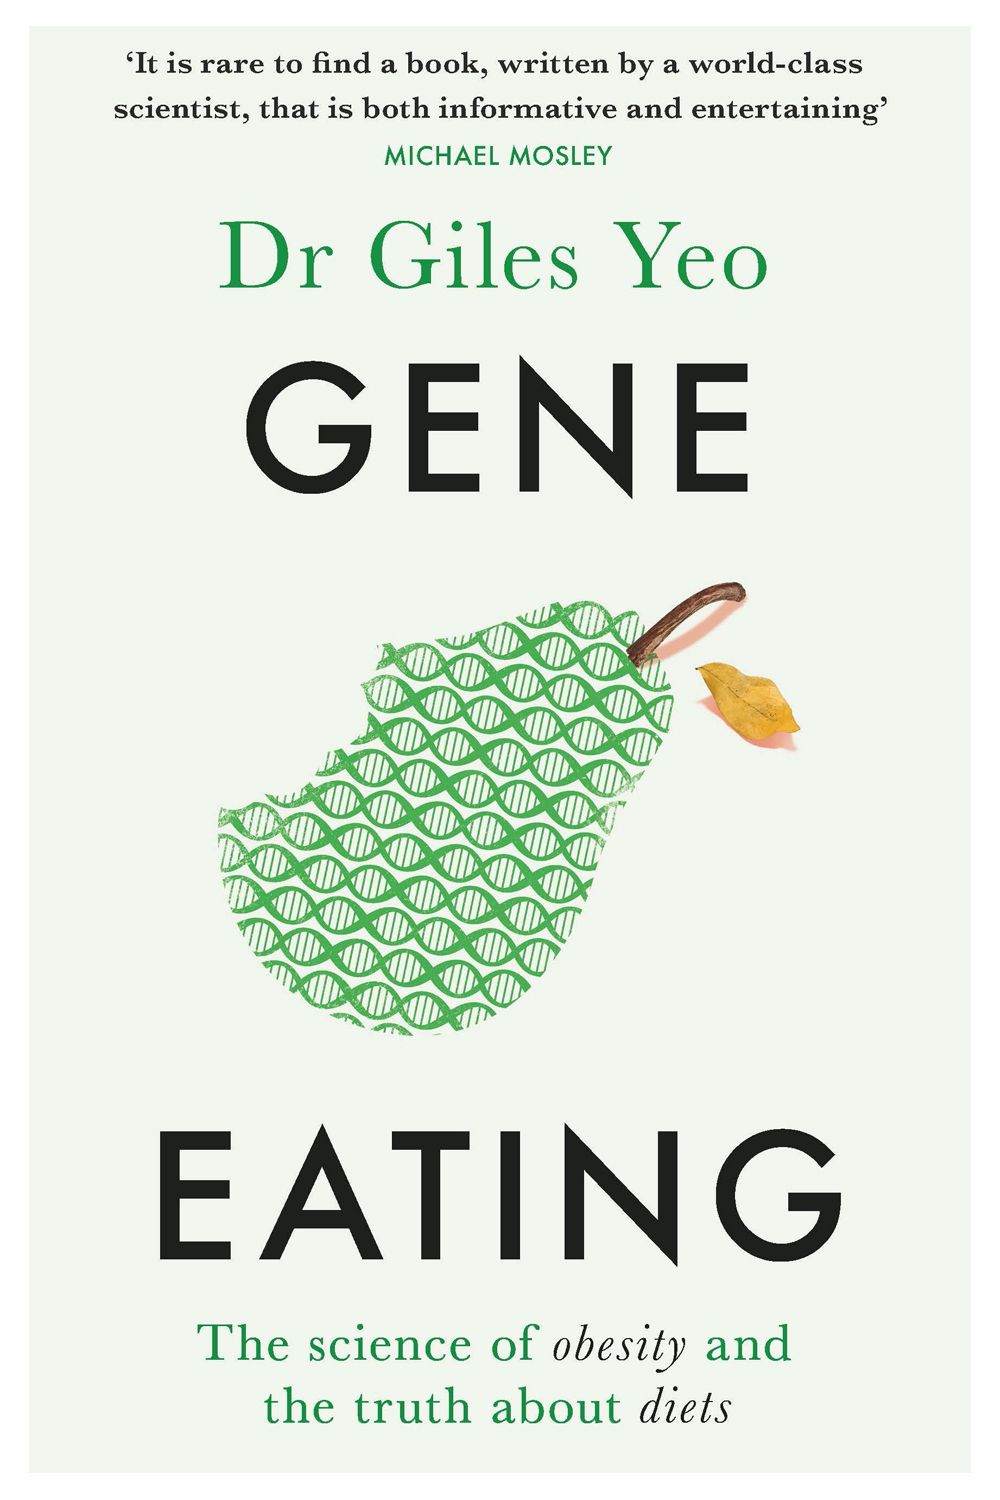 Gene Eating: The Science of Obesity and the Truth About Diets by Dr Giles Yeo